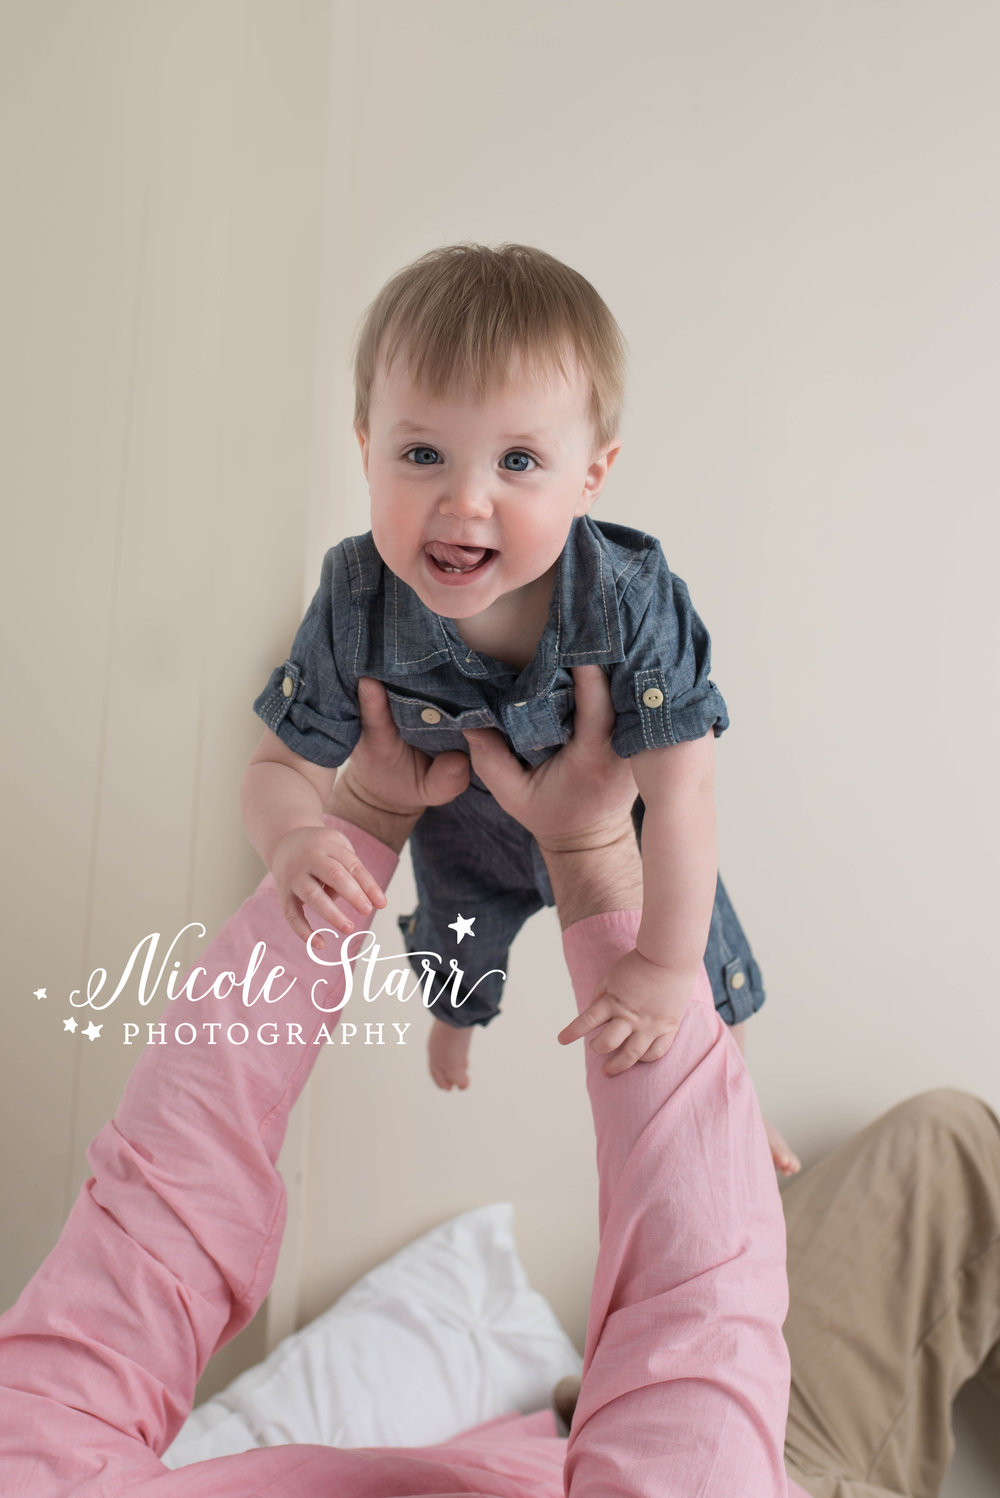 Nicole Starr Photography | Saratoga Springs Family Photographer | Boston Family Photographer | Upstate NY Family Photographer | Family Photographer | Fatherhood Photographer